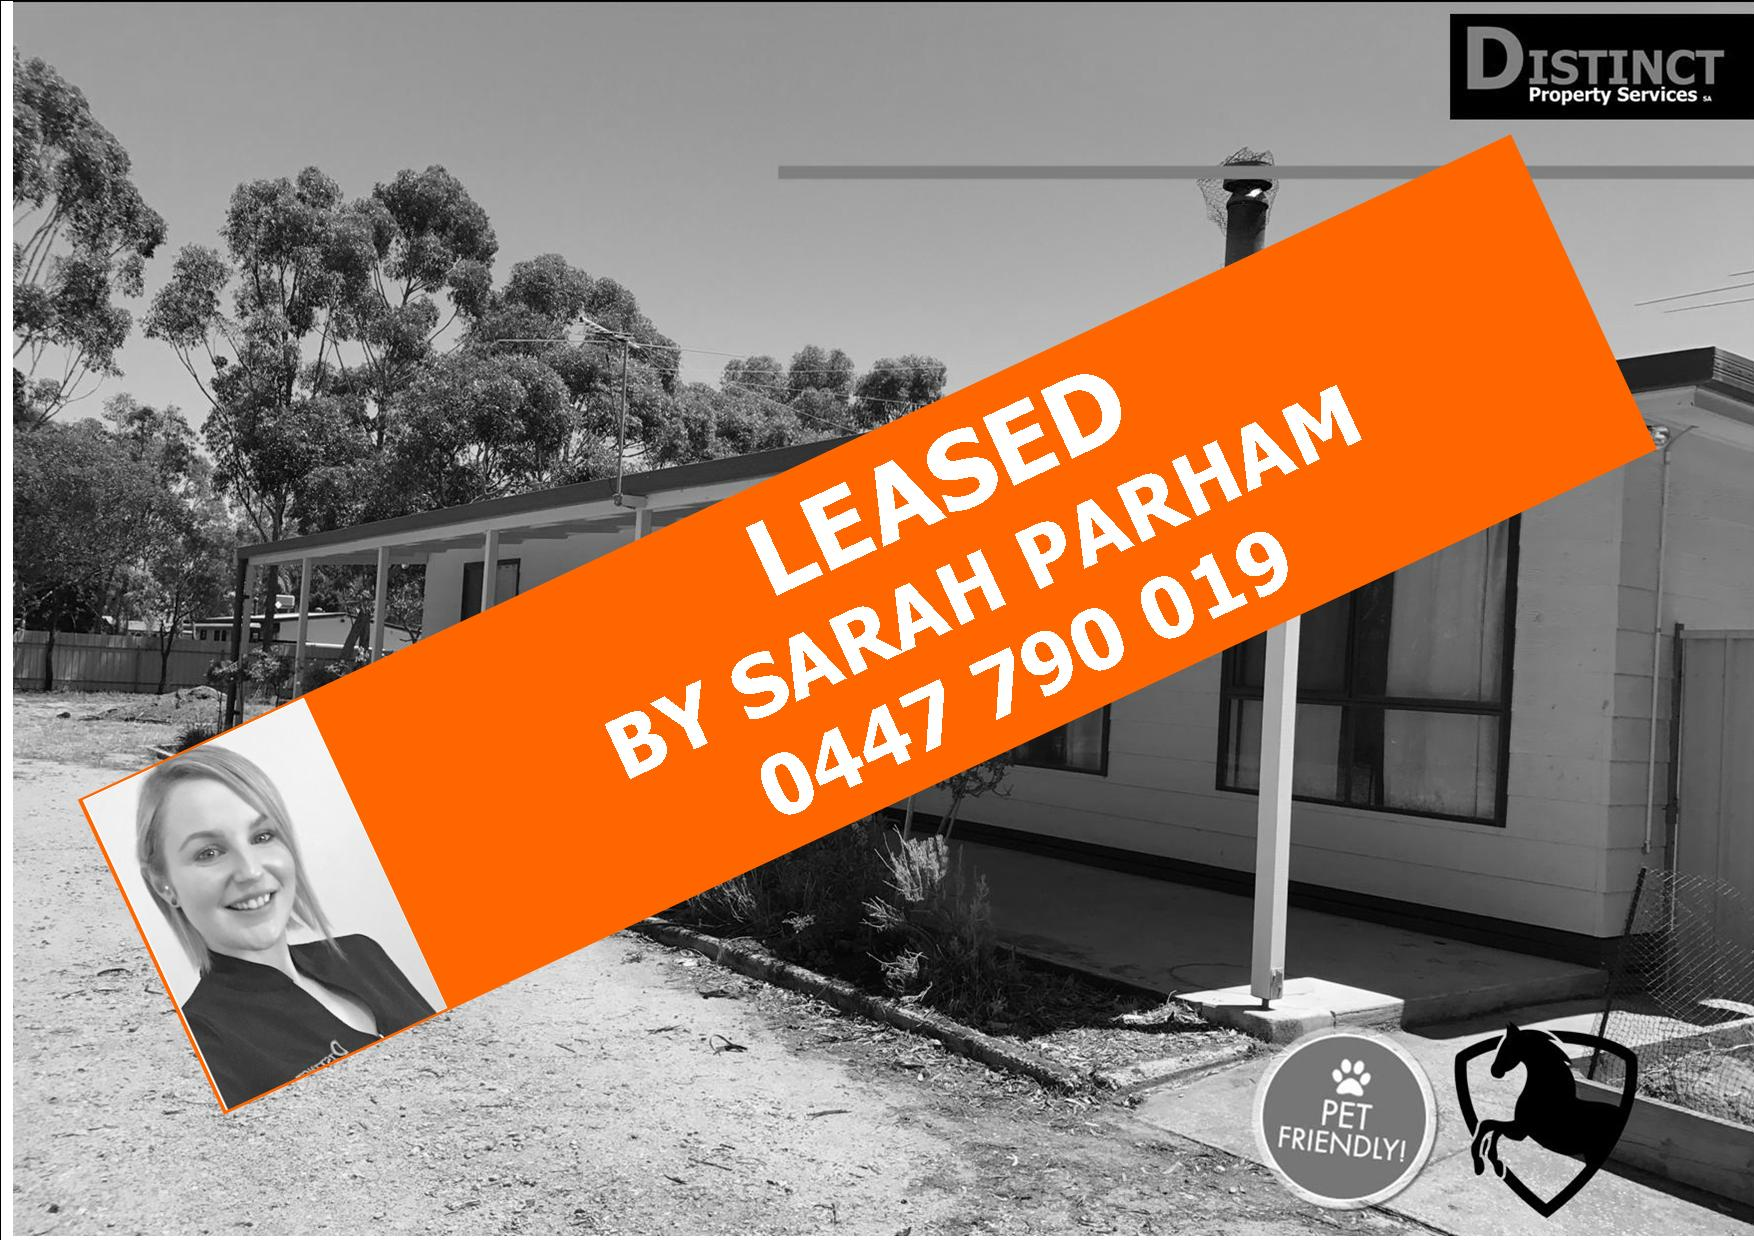 LEASED!  – EXPERIENCE THE DISTINCT DIFFERENCE